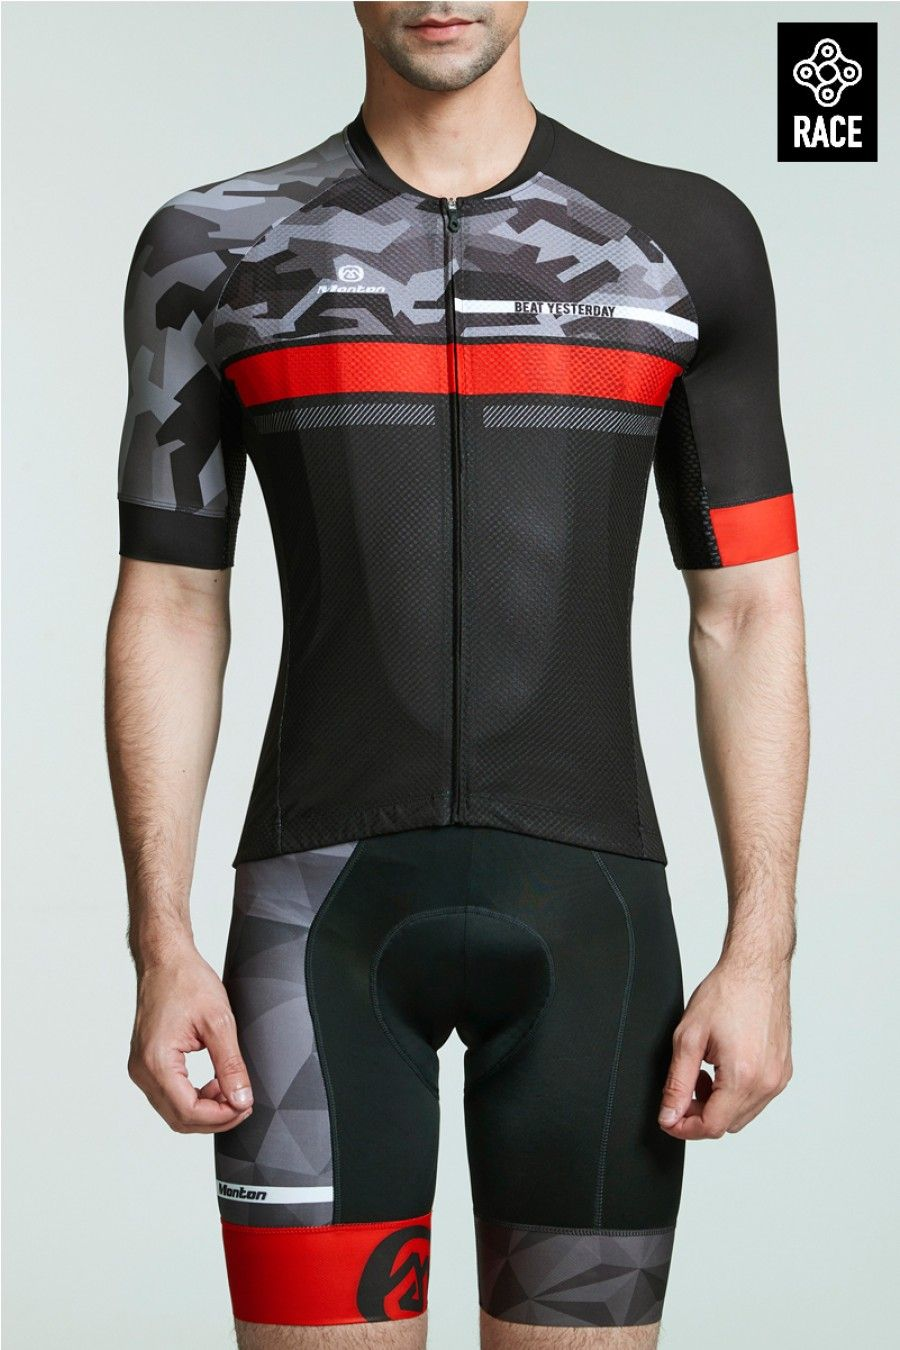 Cycling Clothing I Dig The Digital Camo Digital Pattern Geometric Shapes Trikits